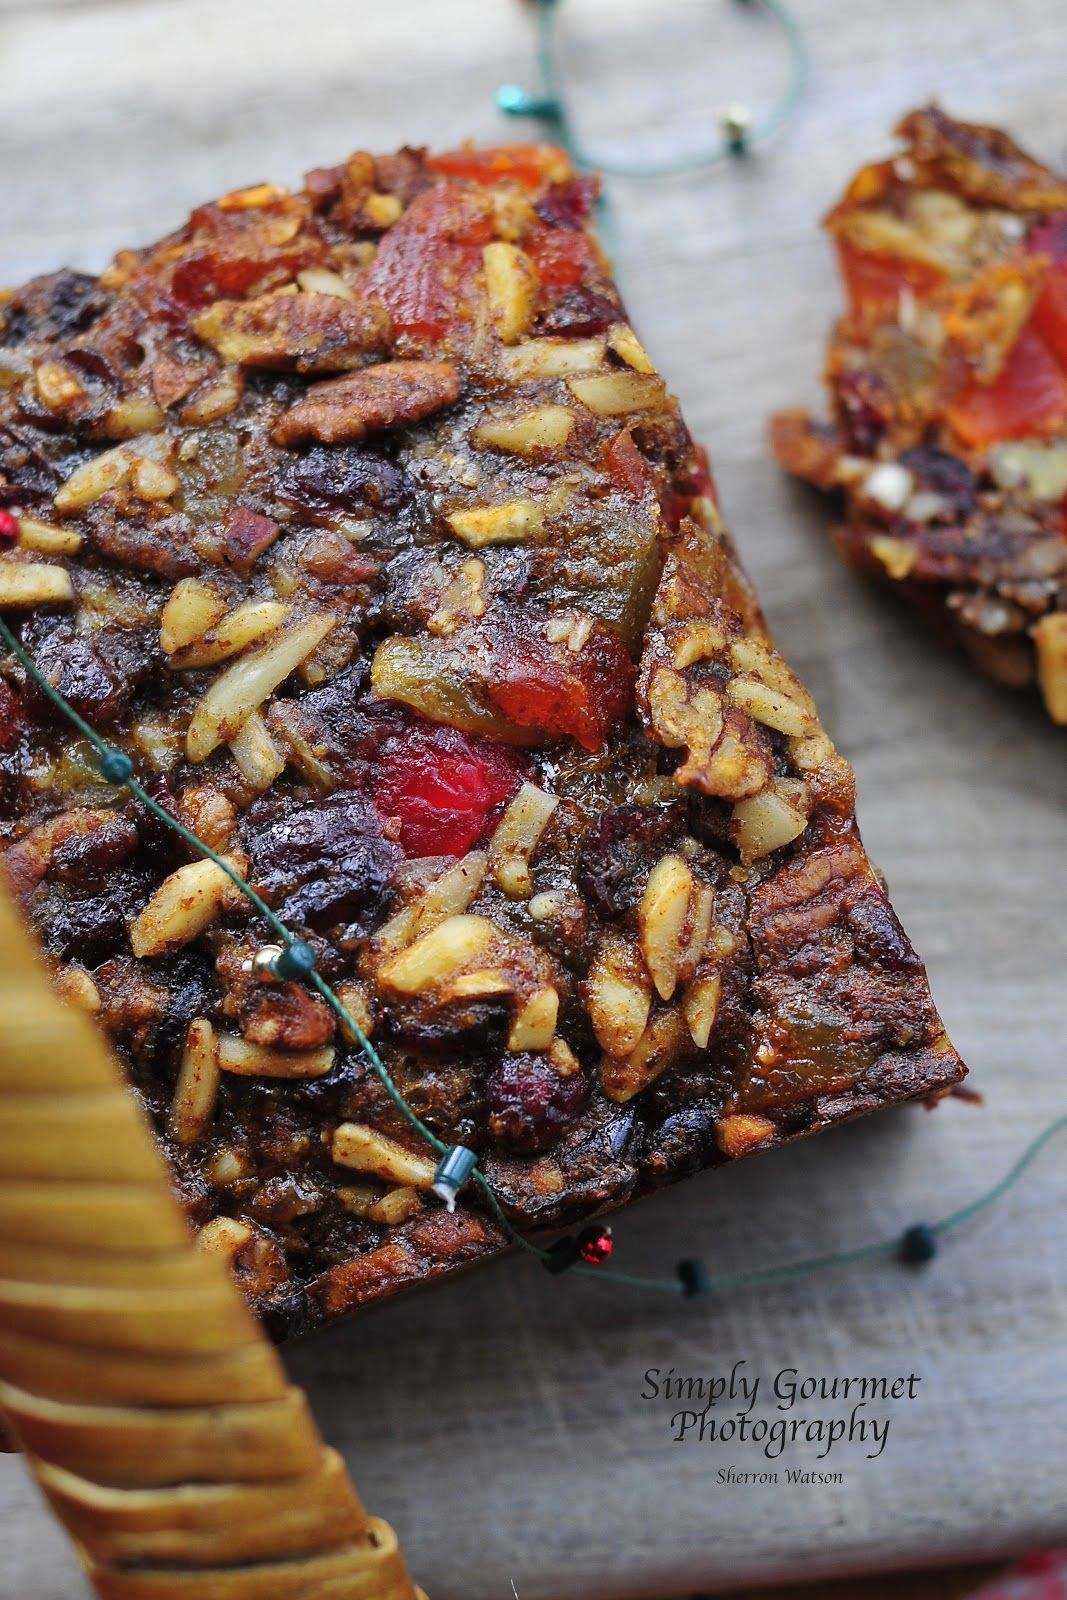 Boozy fruit cake twelveloaves fruit cakes plant based diet and recipe and lifestyle centered around a plant based diet we transitioned to a vegan diet a year ago and these are the foods we eat in our family forumfinder Choice Image